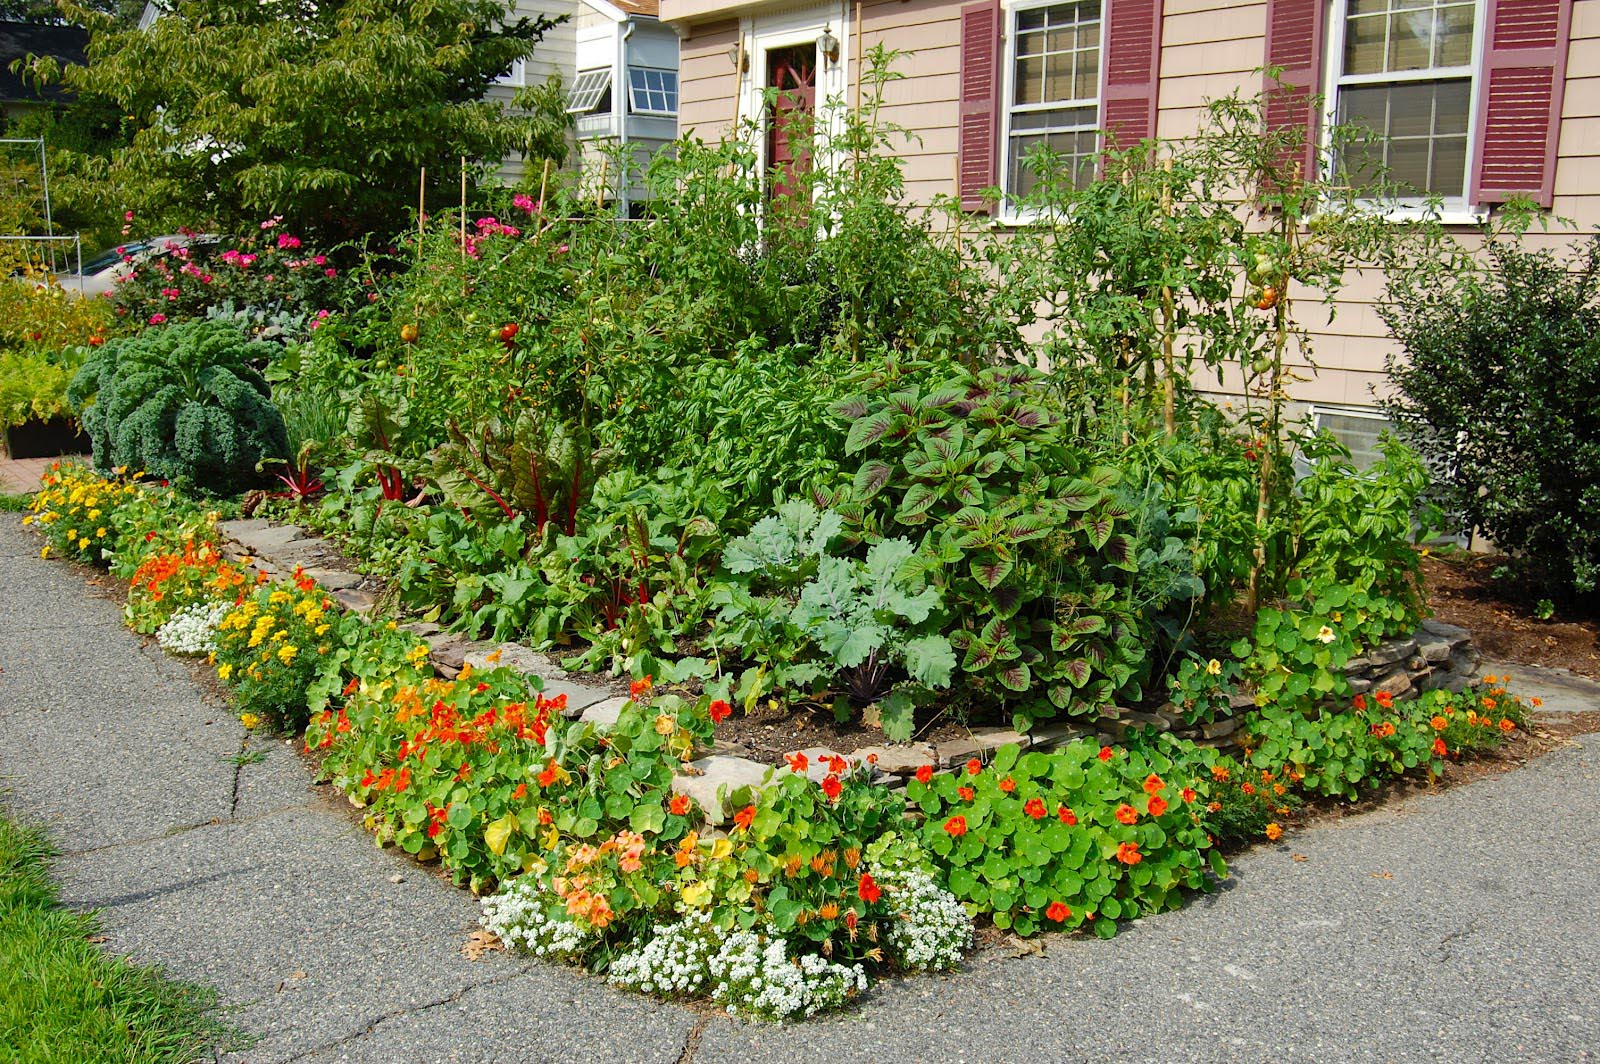 Garden in the Front Yard